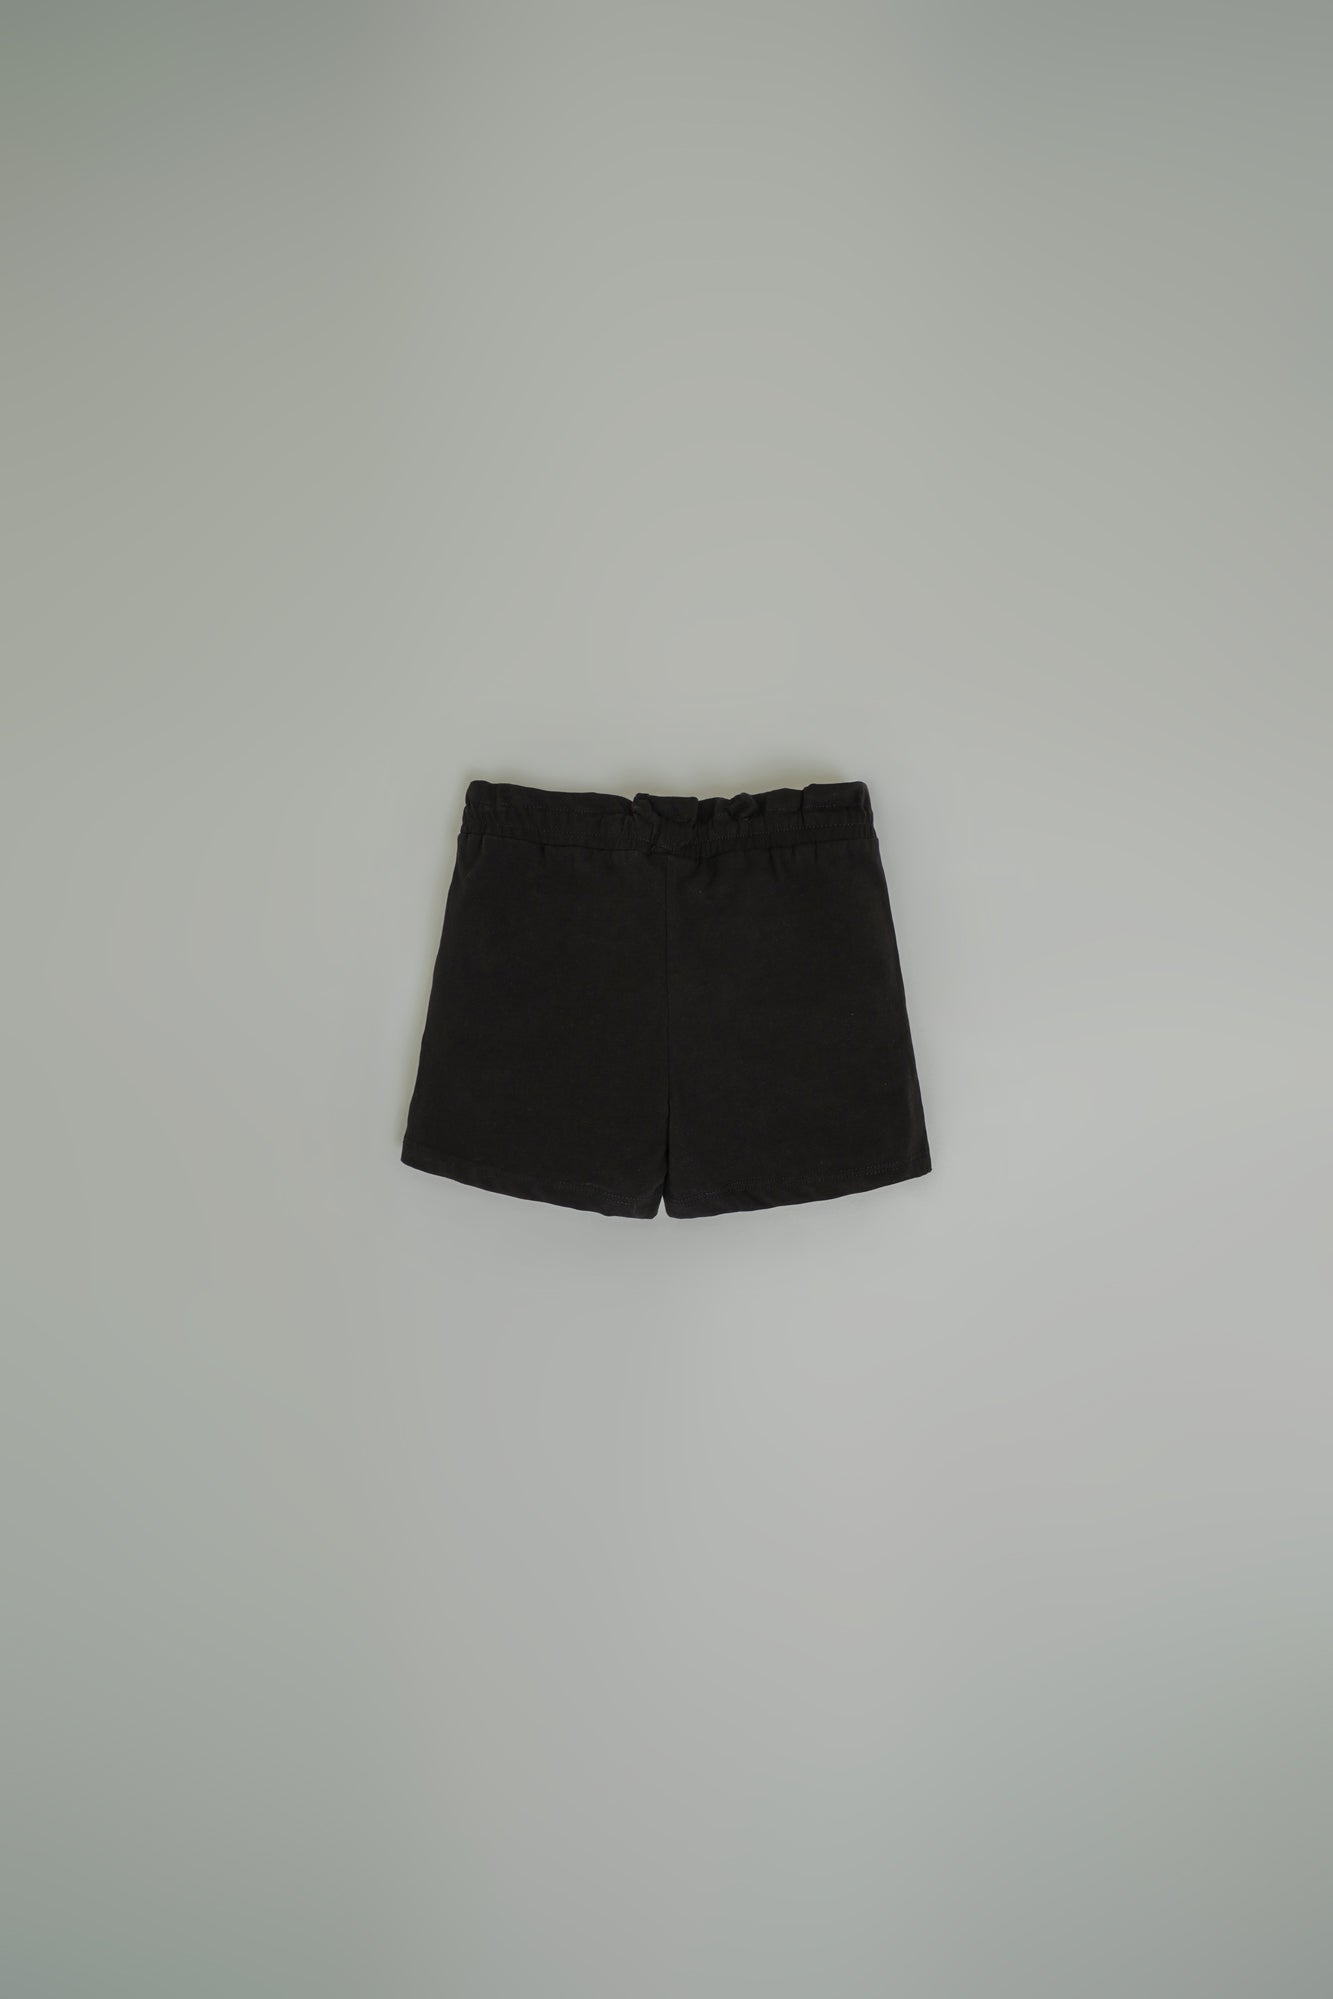 SOLID SHORTS (GBF203095) - Ethnic by Outfitters